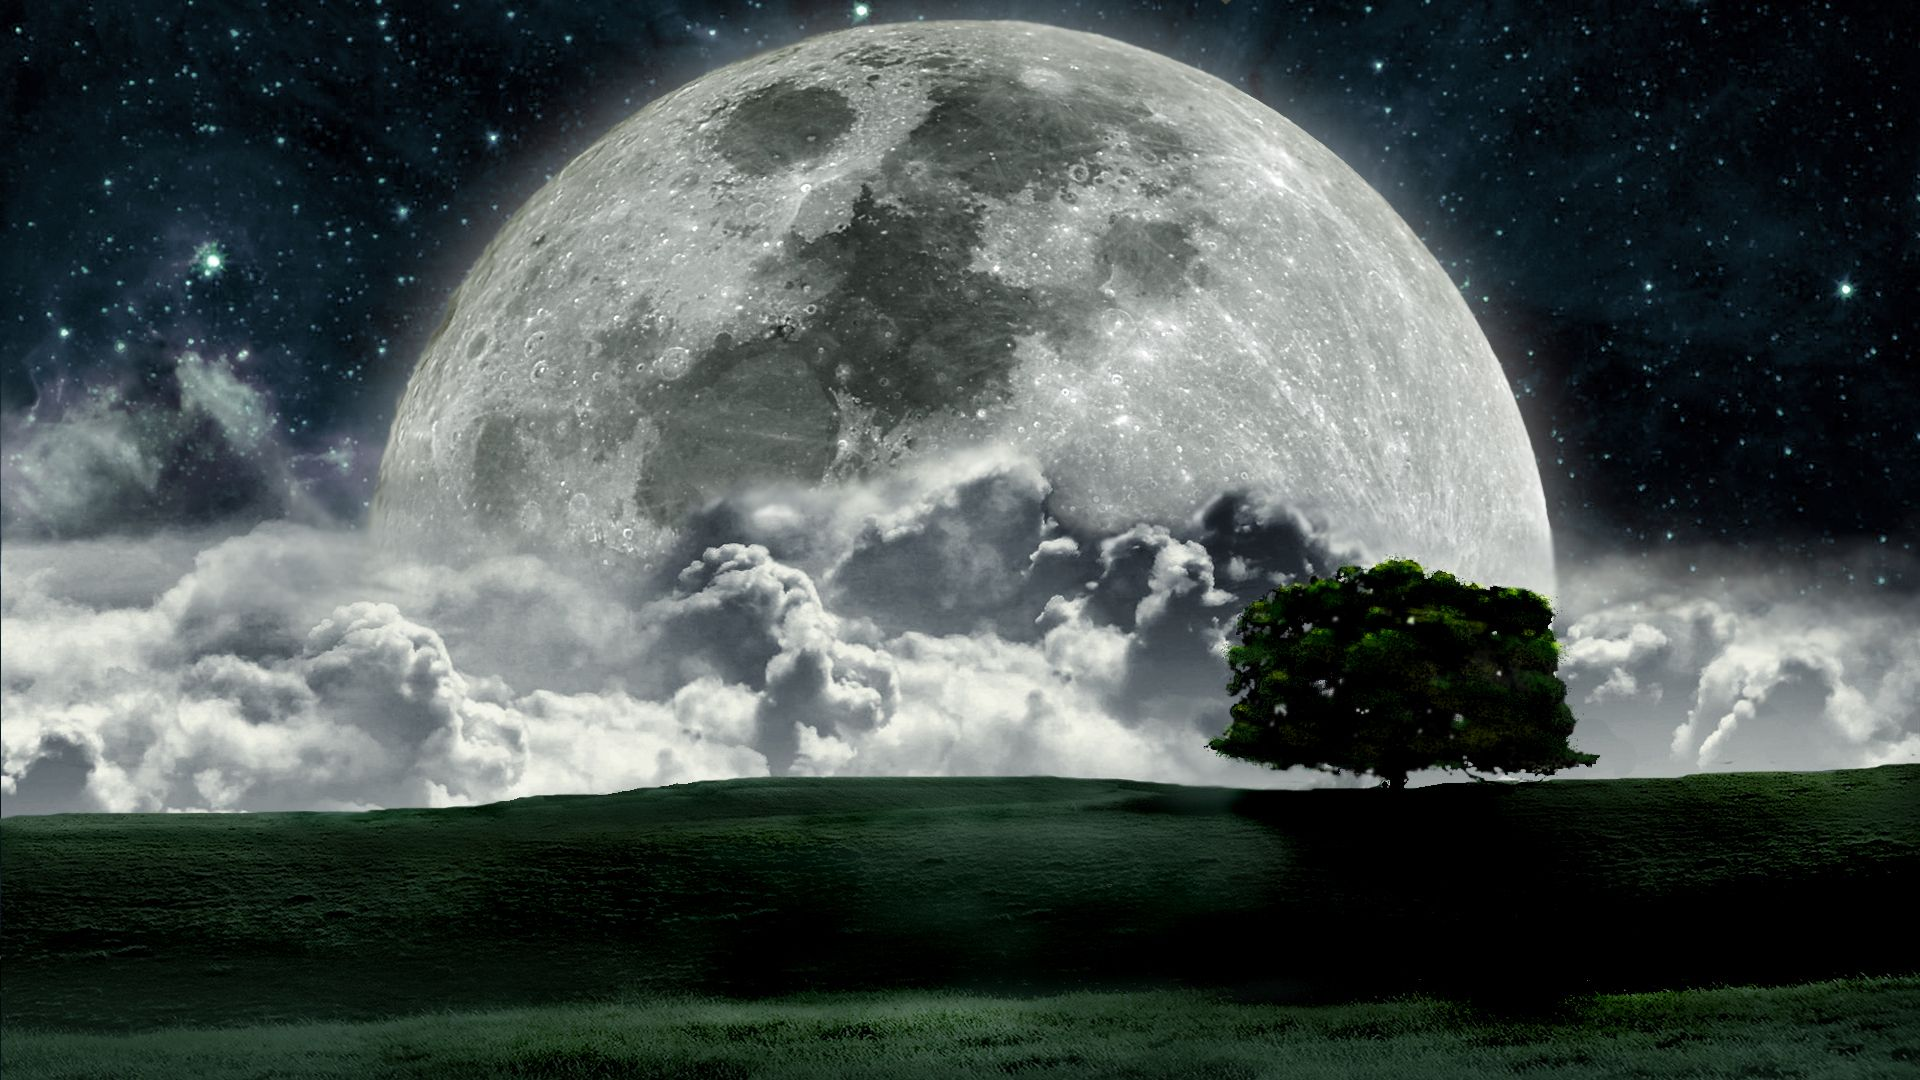 Cool Wallpapers Resolution Wallpaper Moon Photo 1920x1080